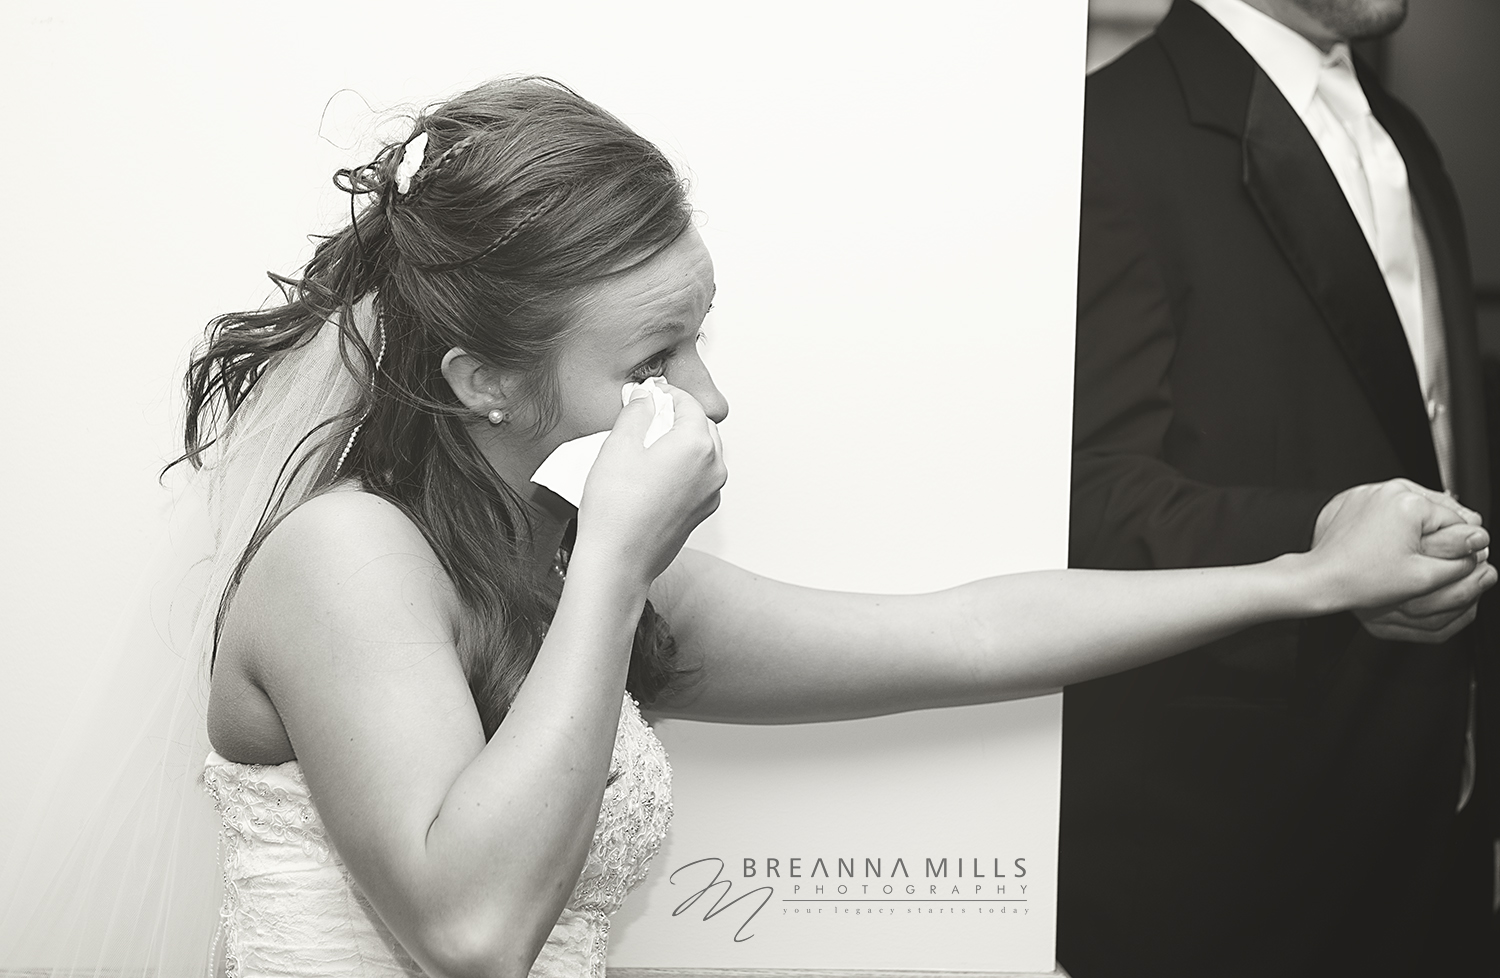 Johnson City Photographer, Breanna Mills Photography captures and emotional bride with her groom on their wedding day.